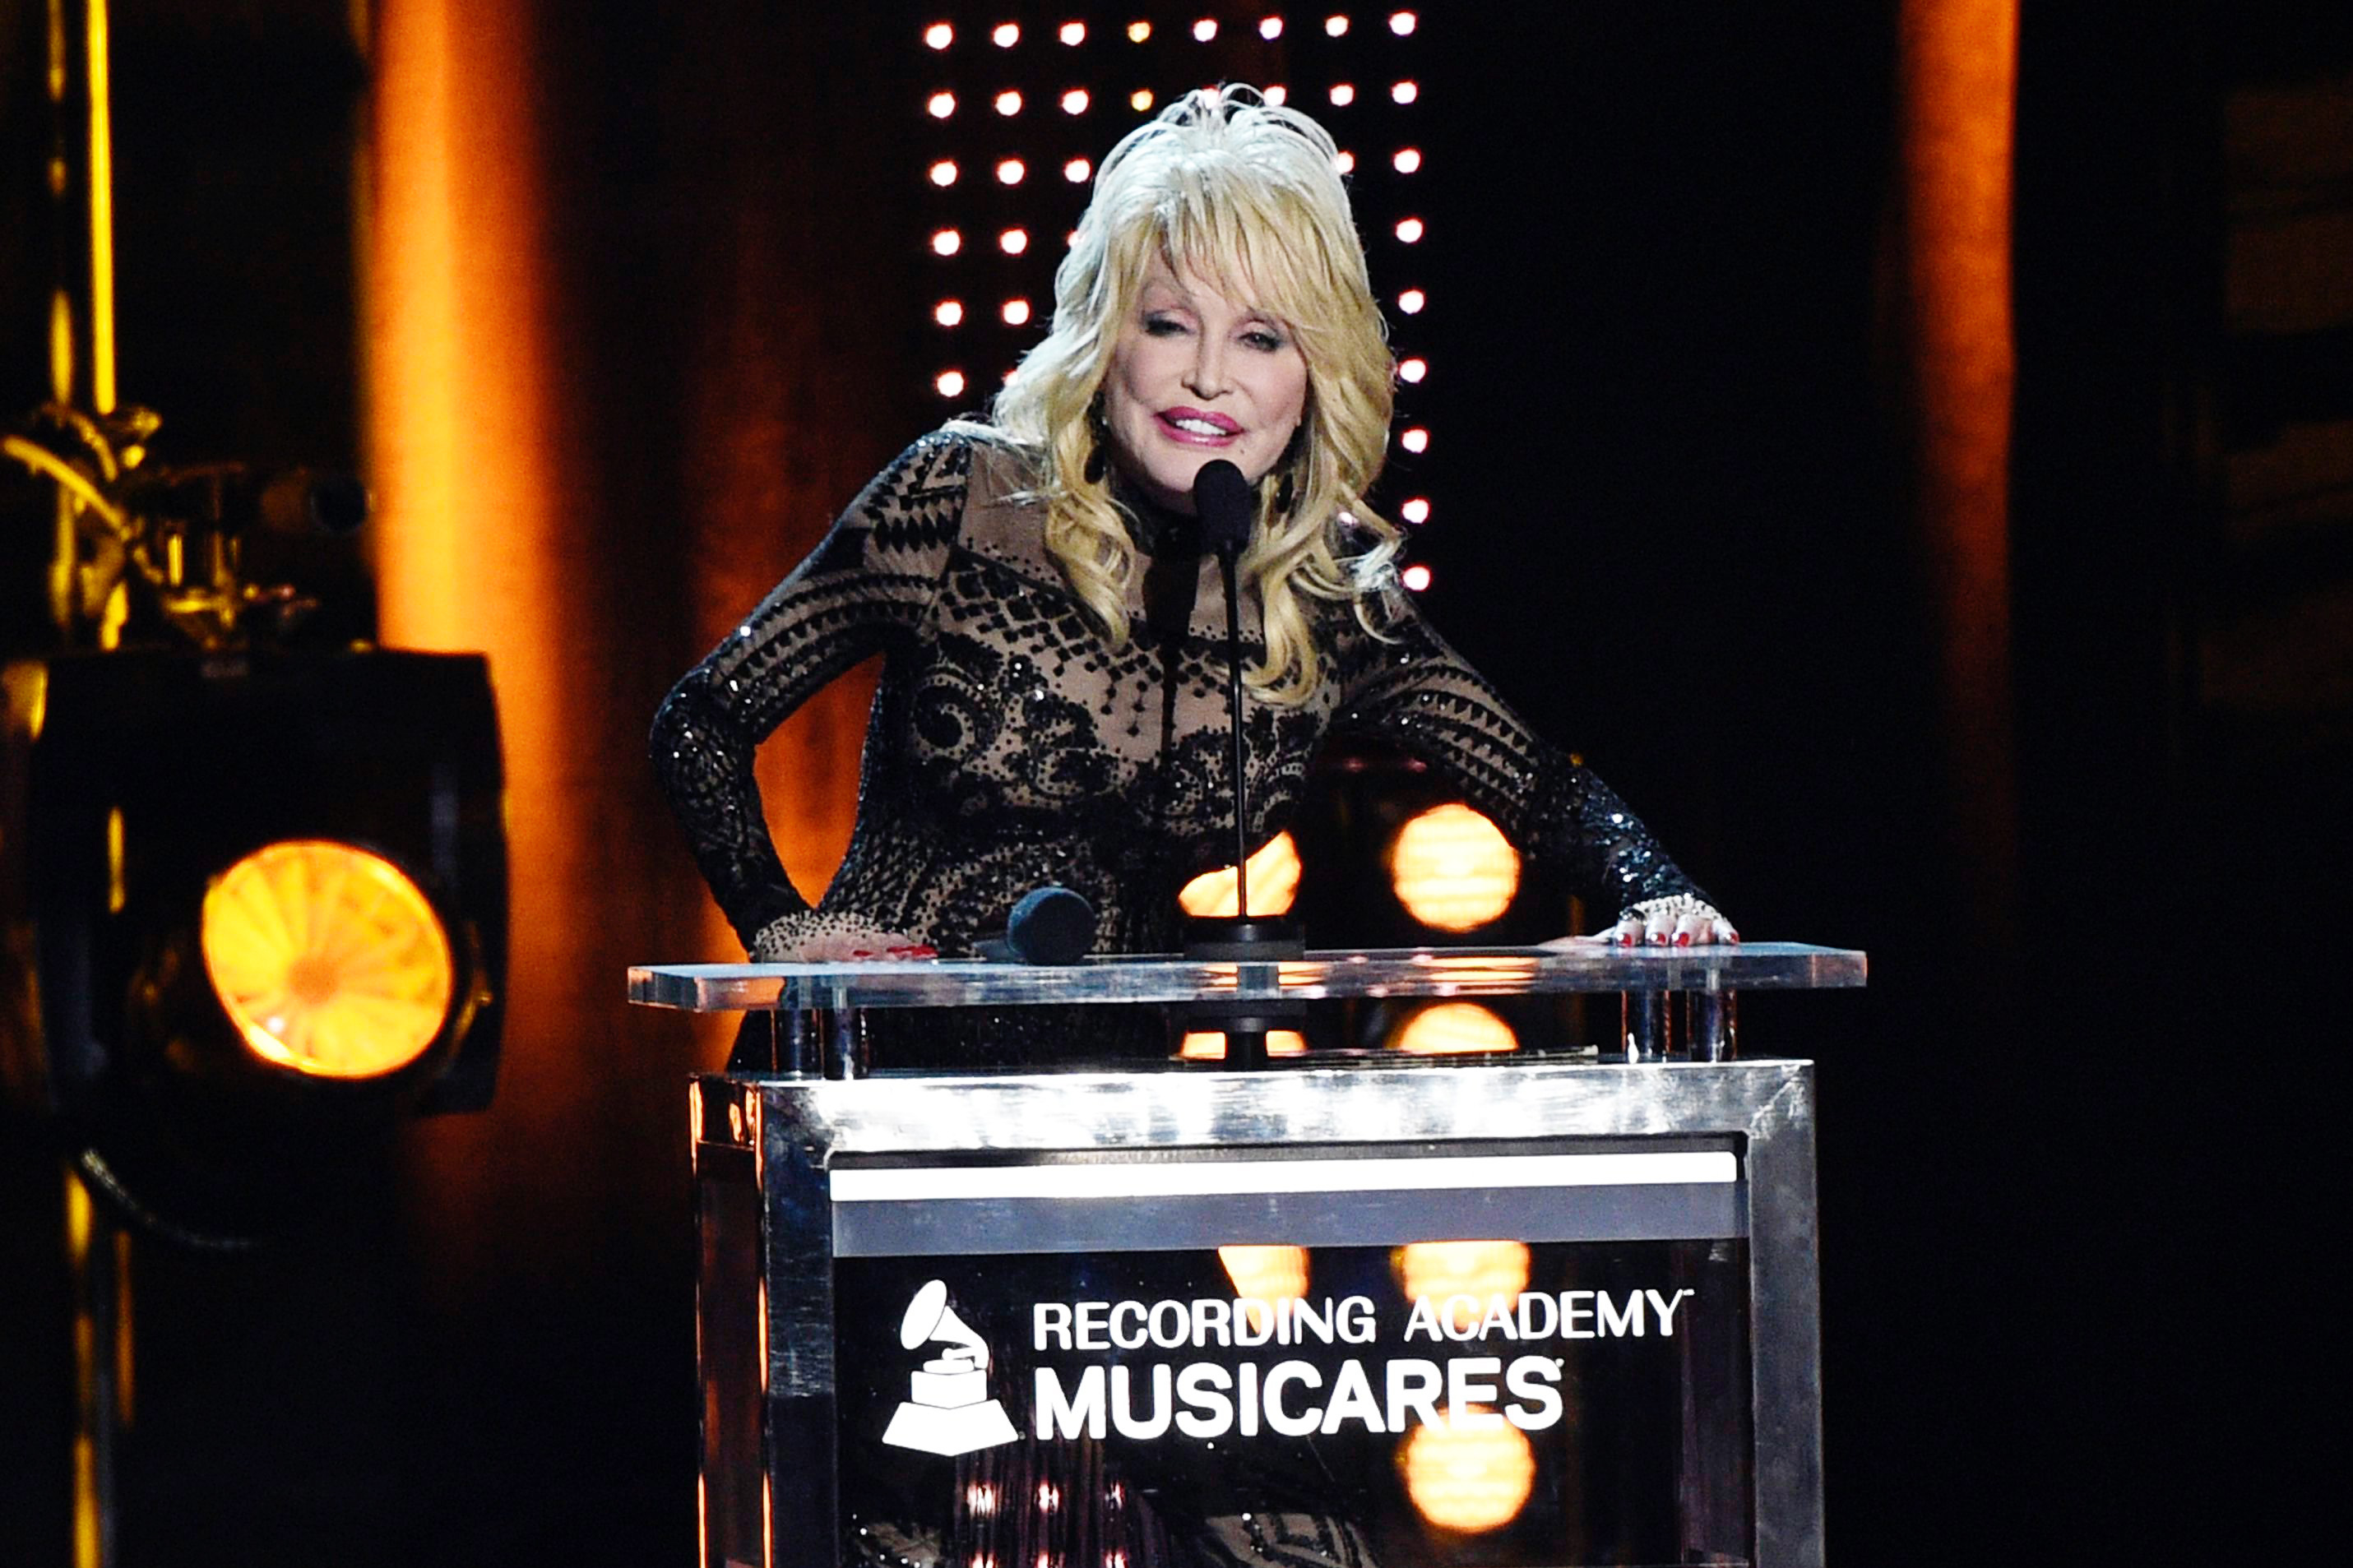 When Musicians 'Crash and Burn,' MusiCares Is There to Help